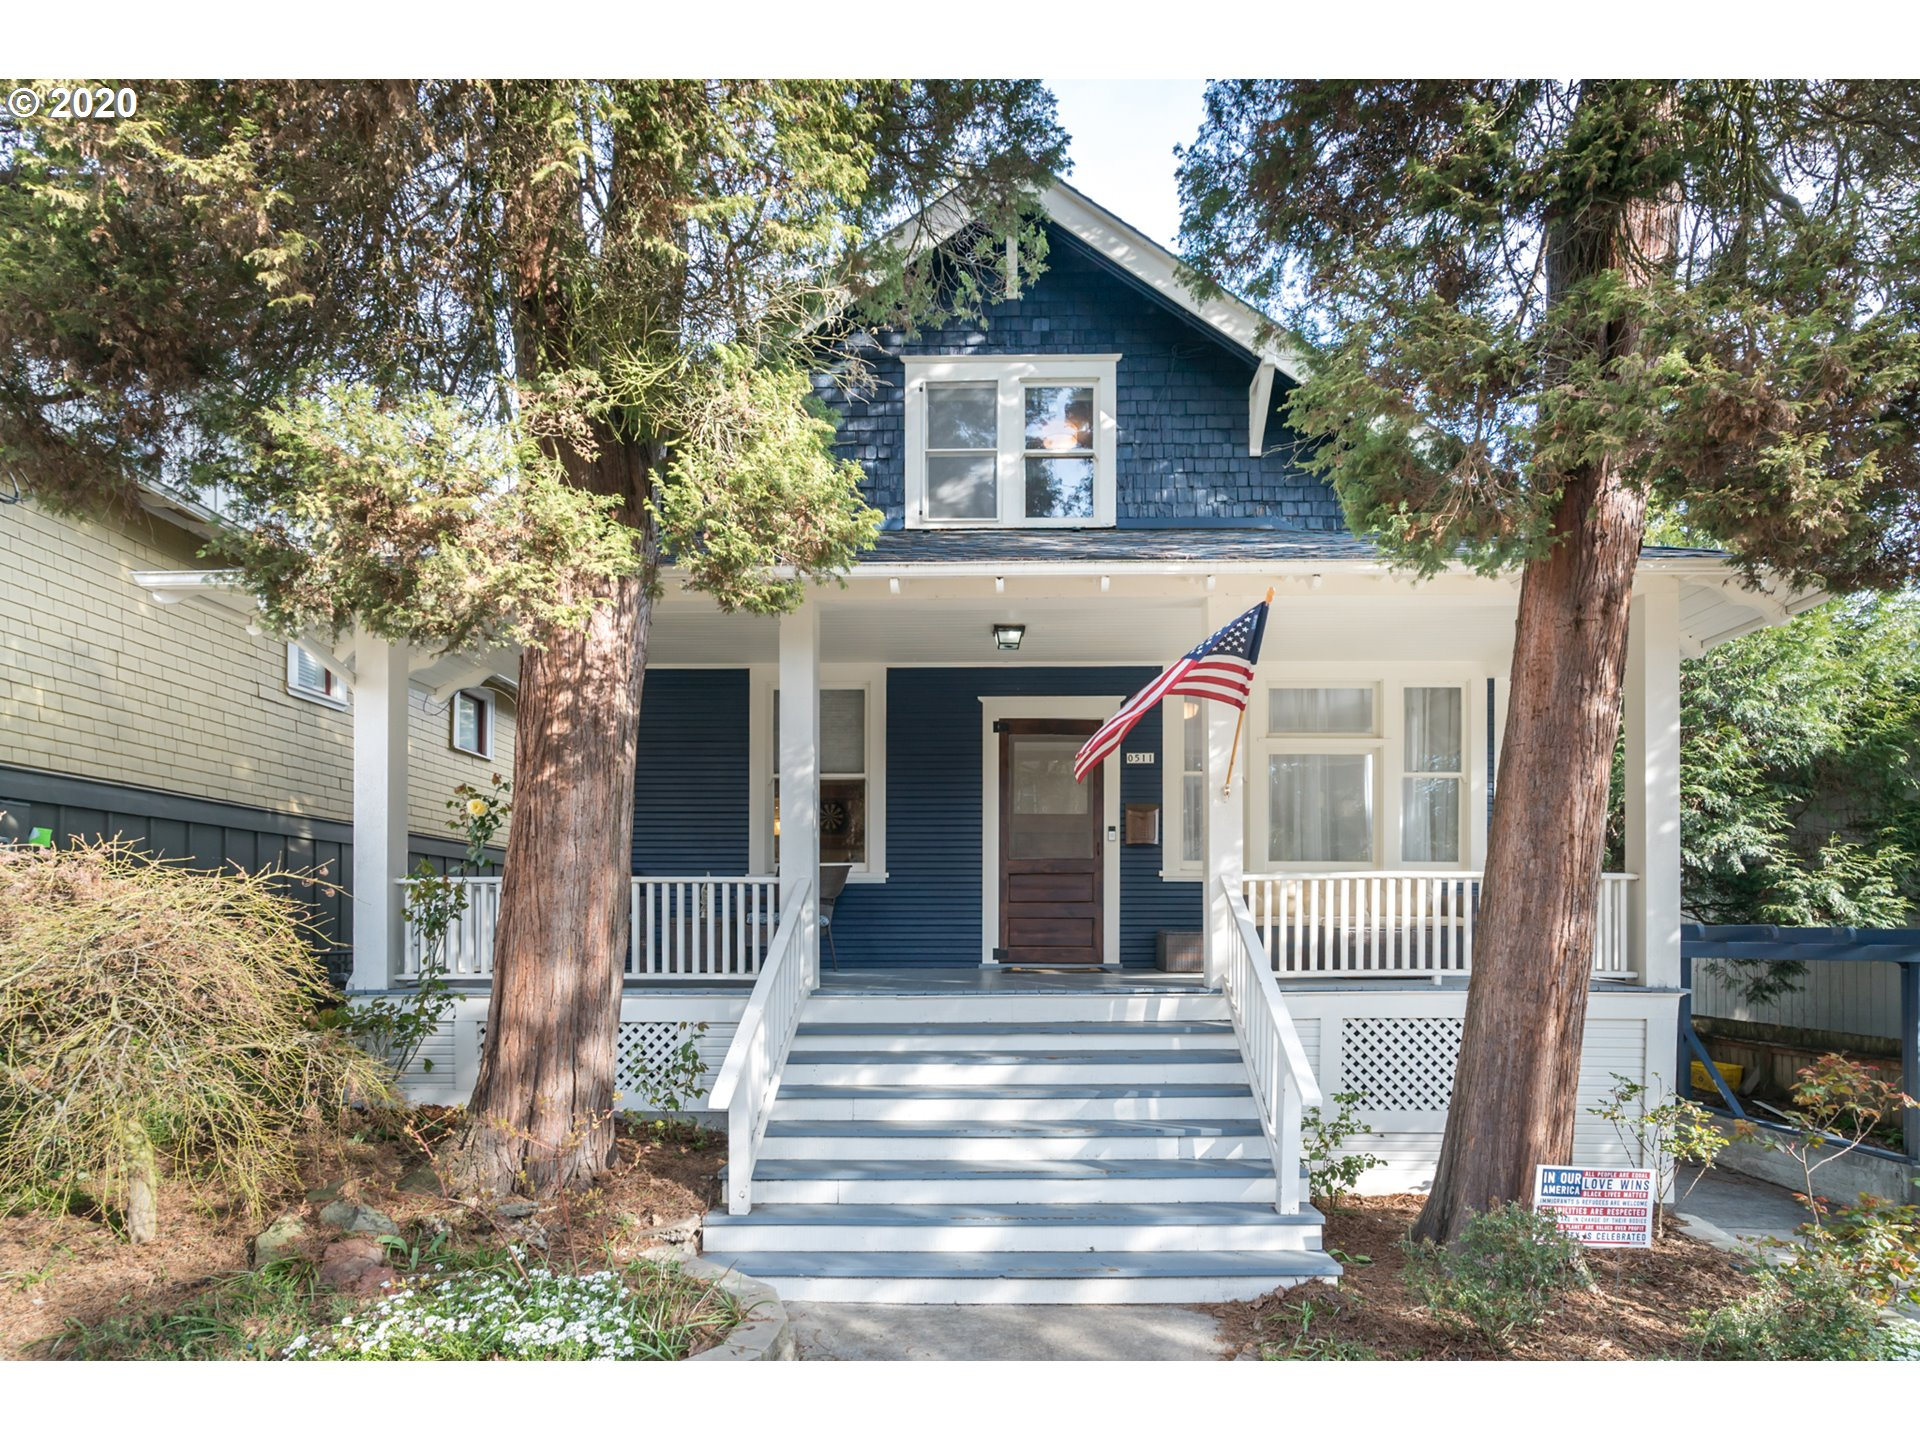 Thoughtfully renovated home in coveted John's Landing! Steps from Zupans, Willamette Park and many restaurants- this home is an urban dweller's dream! Fenced in backyard, gorgeous updated kitchen with high end appliances and respect to original finishes throughout. Enjoy the 1910 features old and new, from it's hidden speakeasy style bar and clawfoot tub to the pull out pantry and soft close drawers- this house it's a must see! Unfinished basement with a separate entrance has options galore!